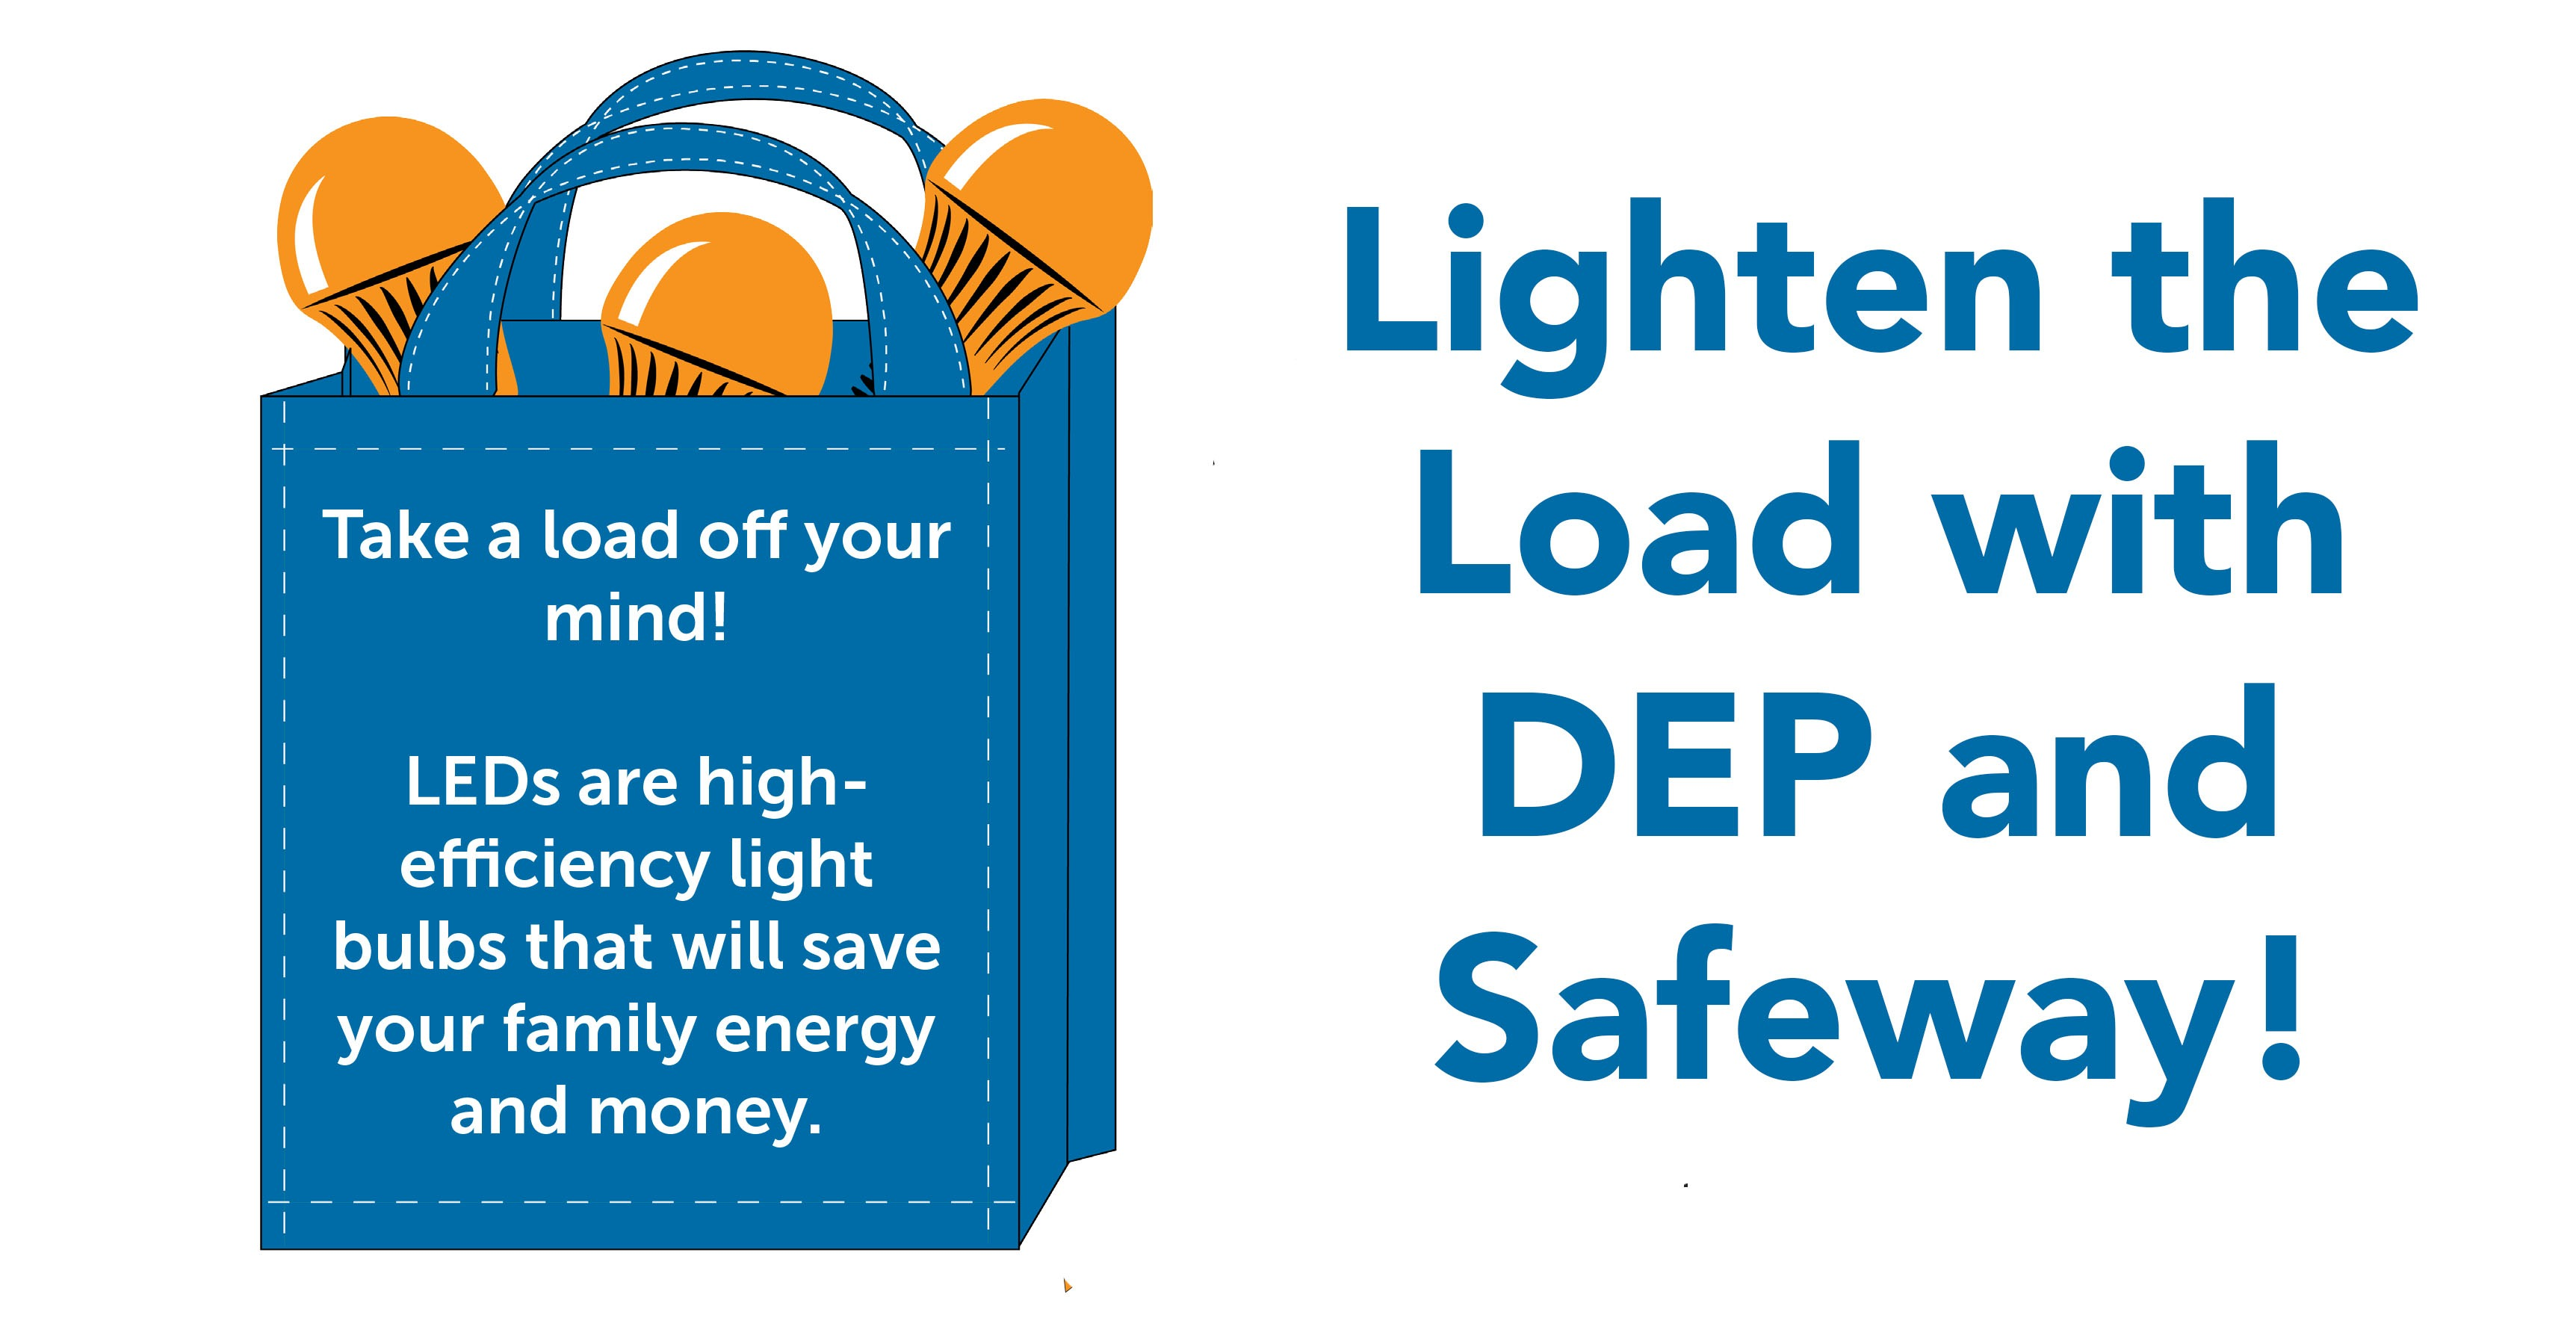 Lighten the Load with DEP and Safeway